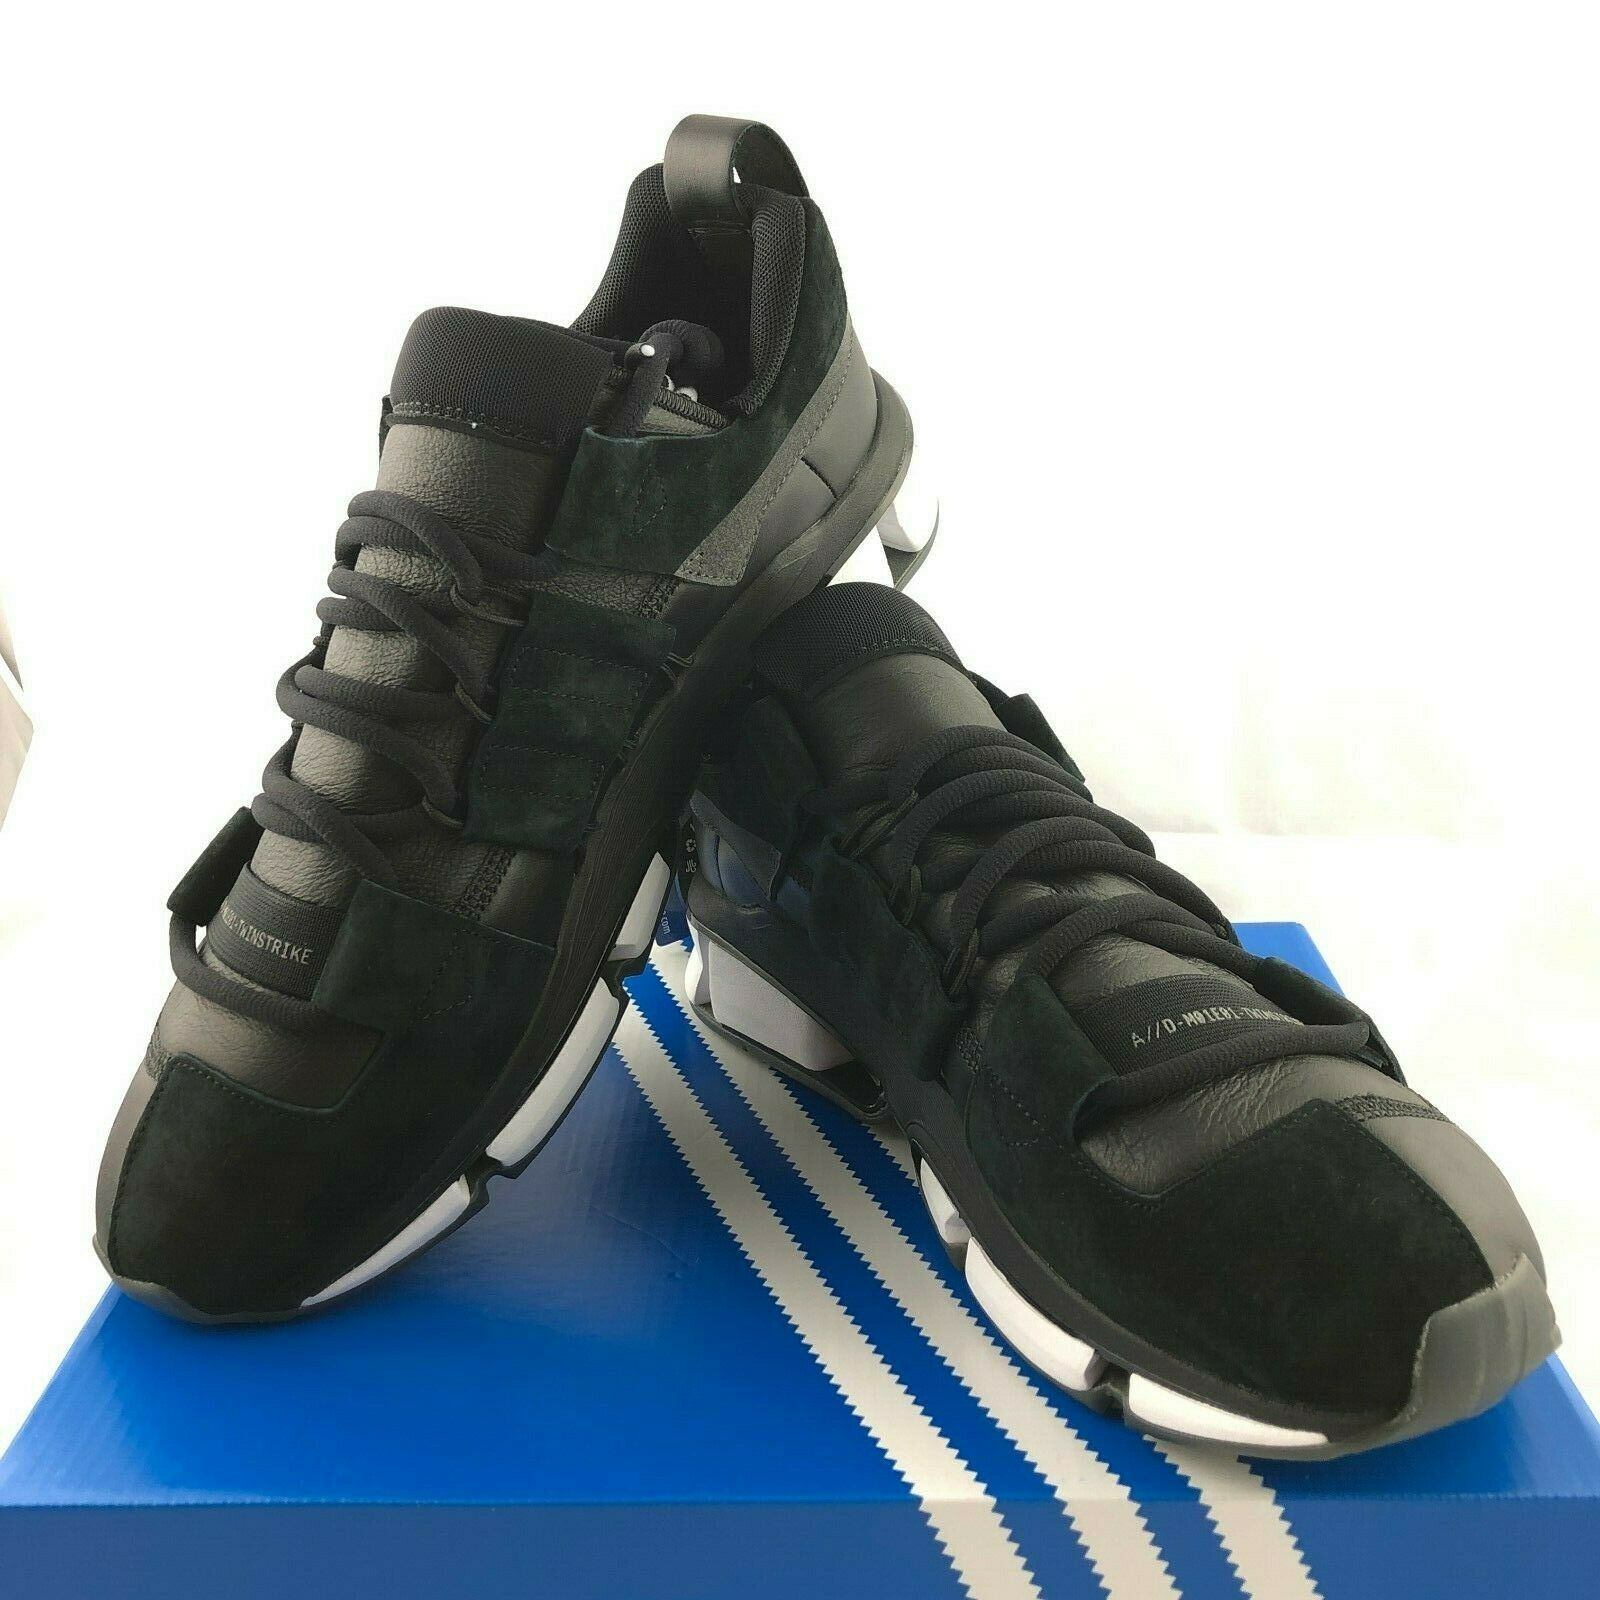 Adidas Originals Twinstrike ADV Stretch Leather shoes (B28015) Men's Size 10